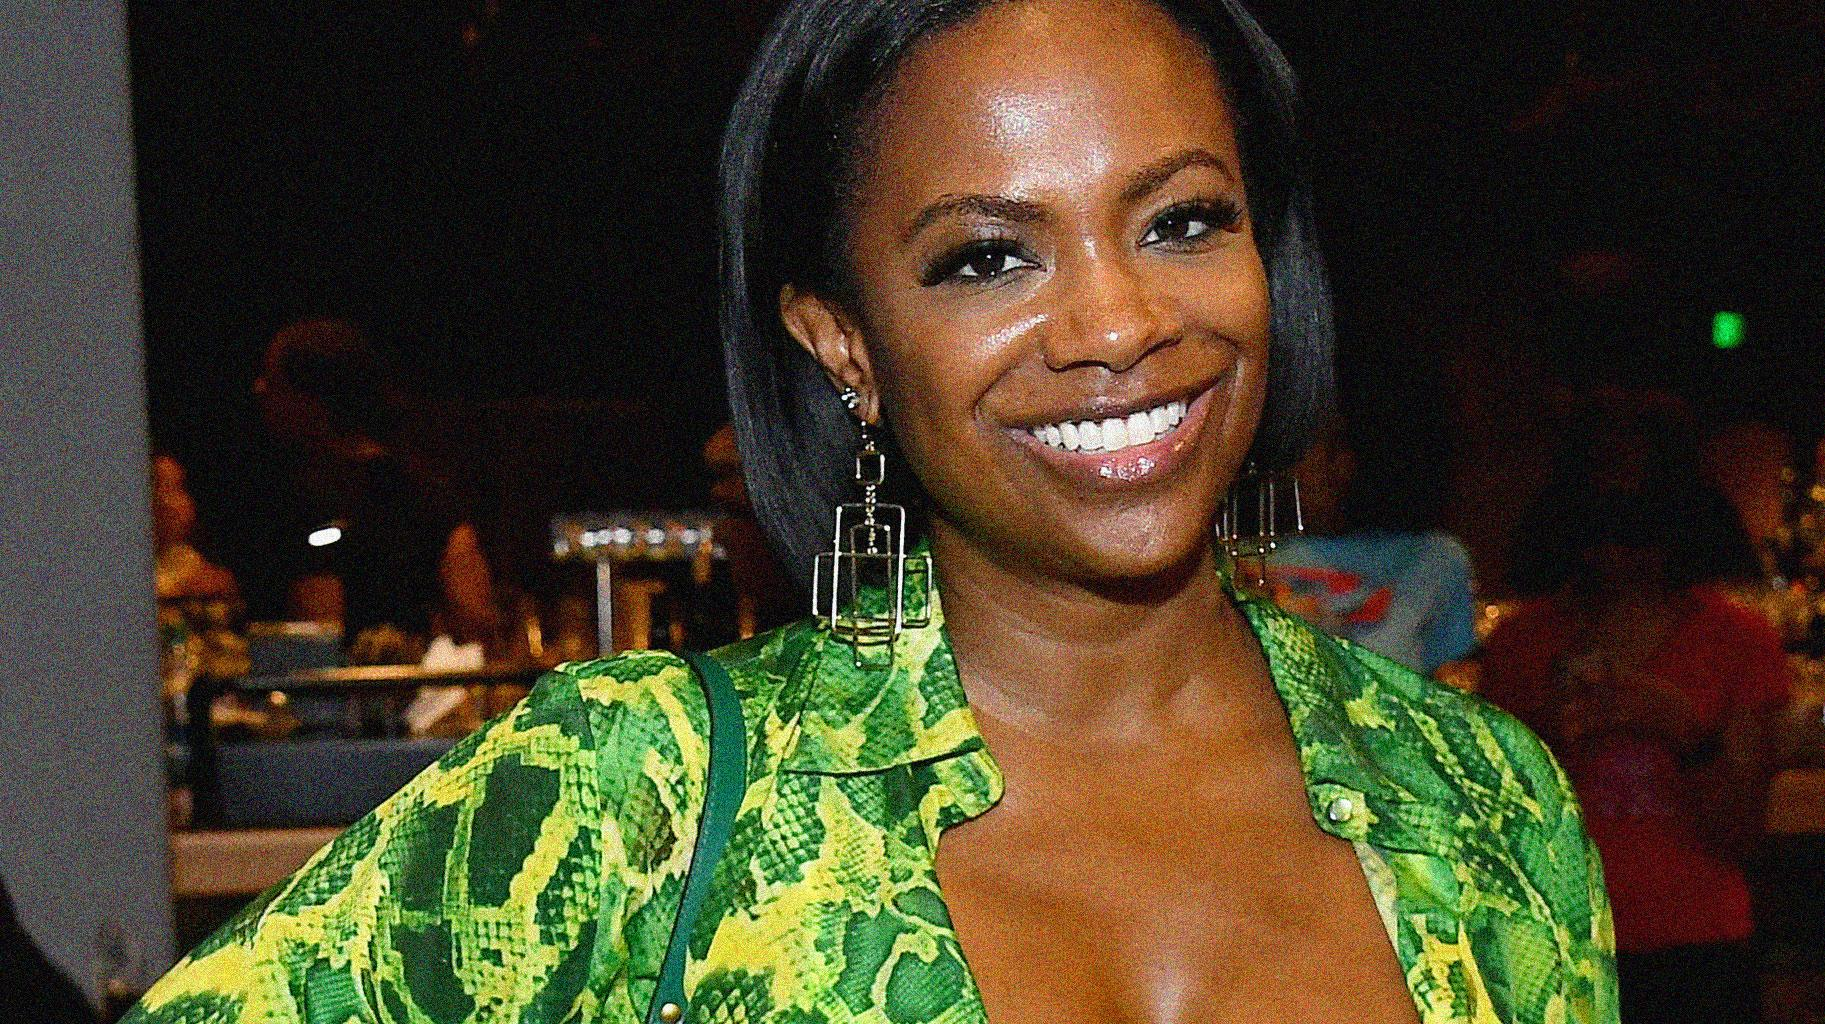 Kandi Burruss Shares A Word Of Wisdom With Her Fans